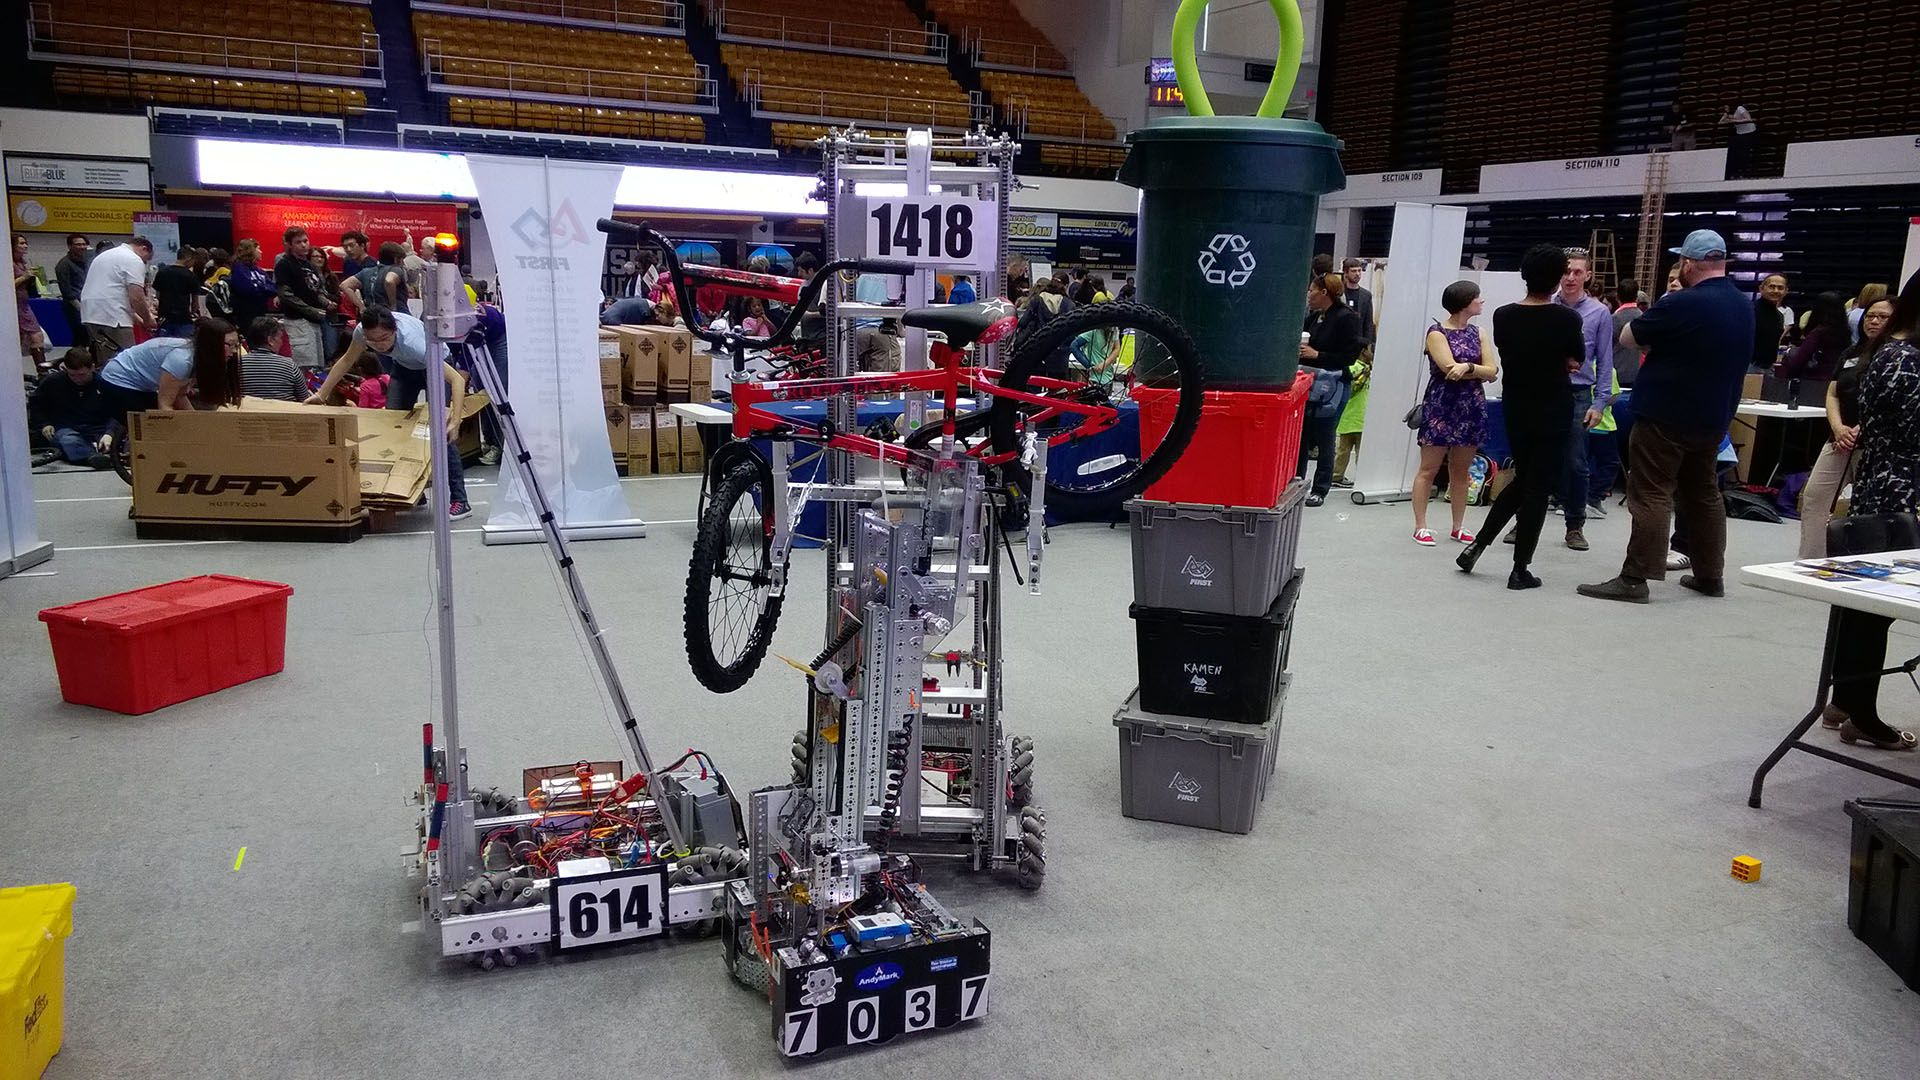 The 2015 robot holding up a red bike.